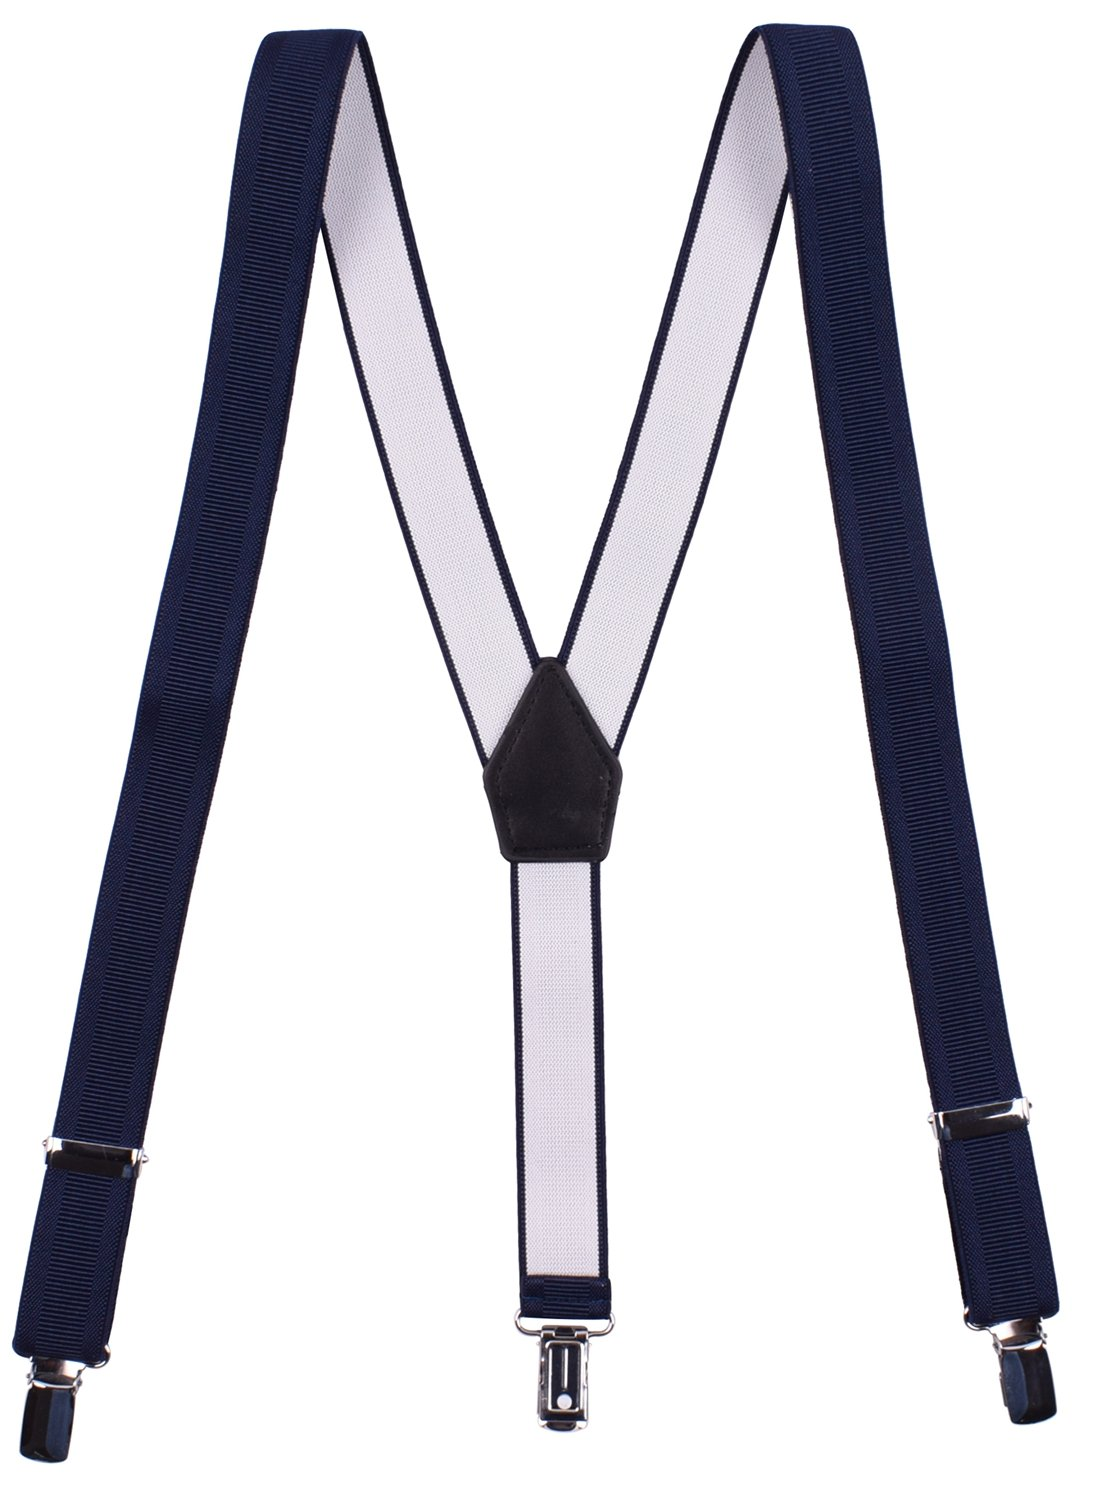 CEAJOO Boy's Suspenders Adjustable Ages 0-15 CJDYSuspender0606kida801